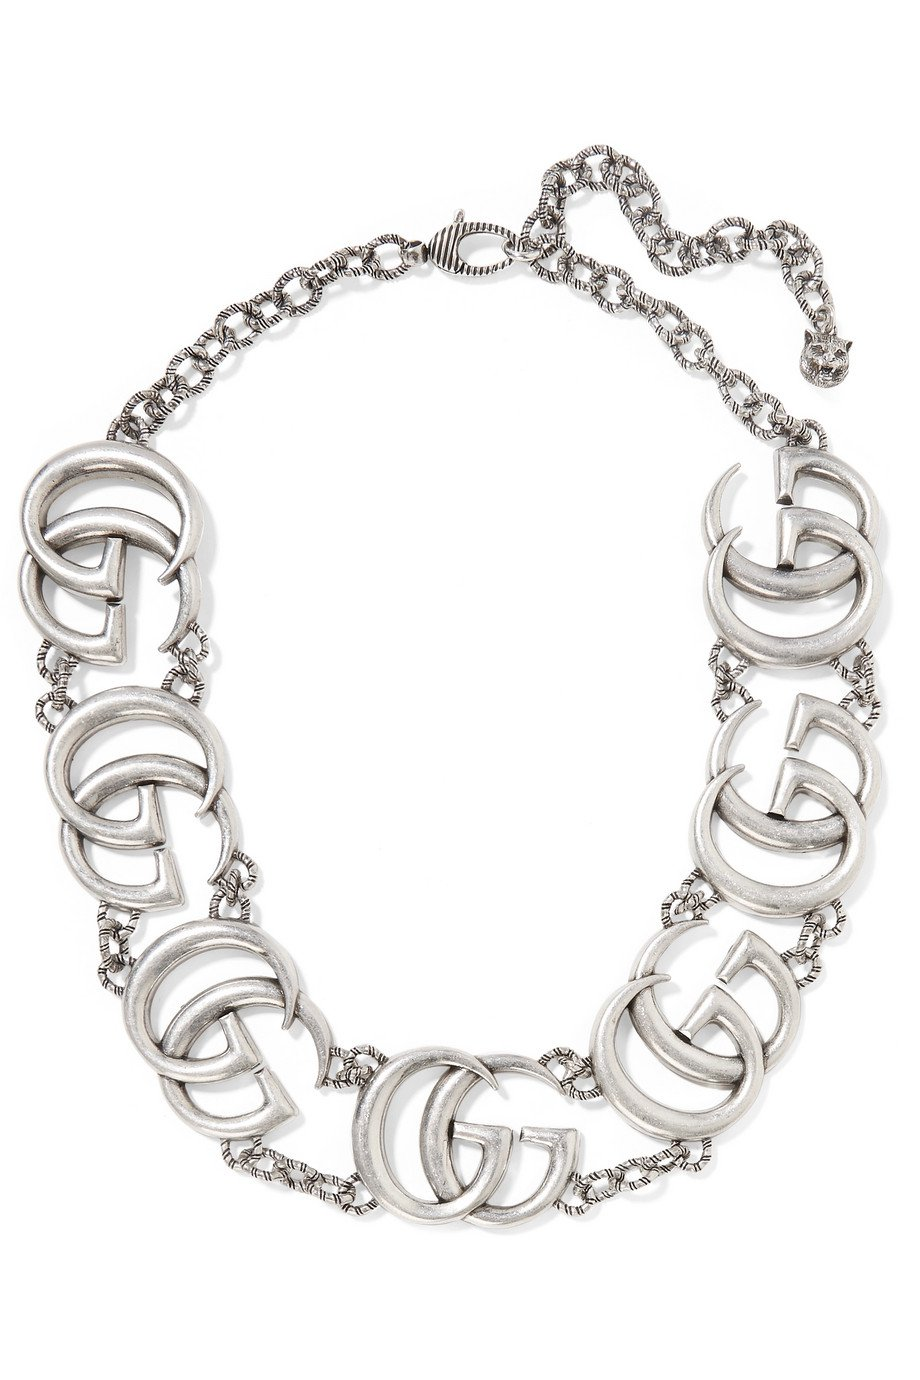 Gucci   Silver-plated necklace   NET-A-PORTER.COM